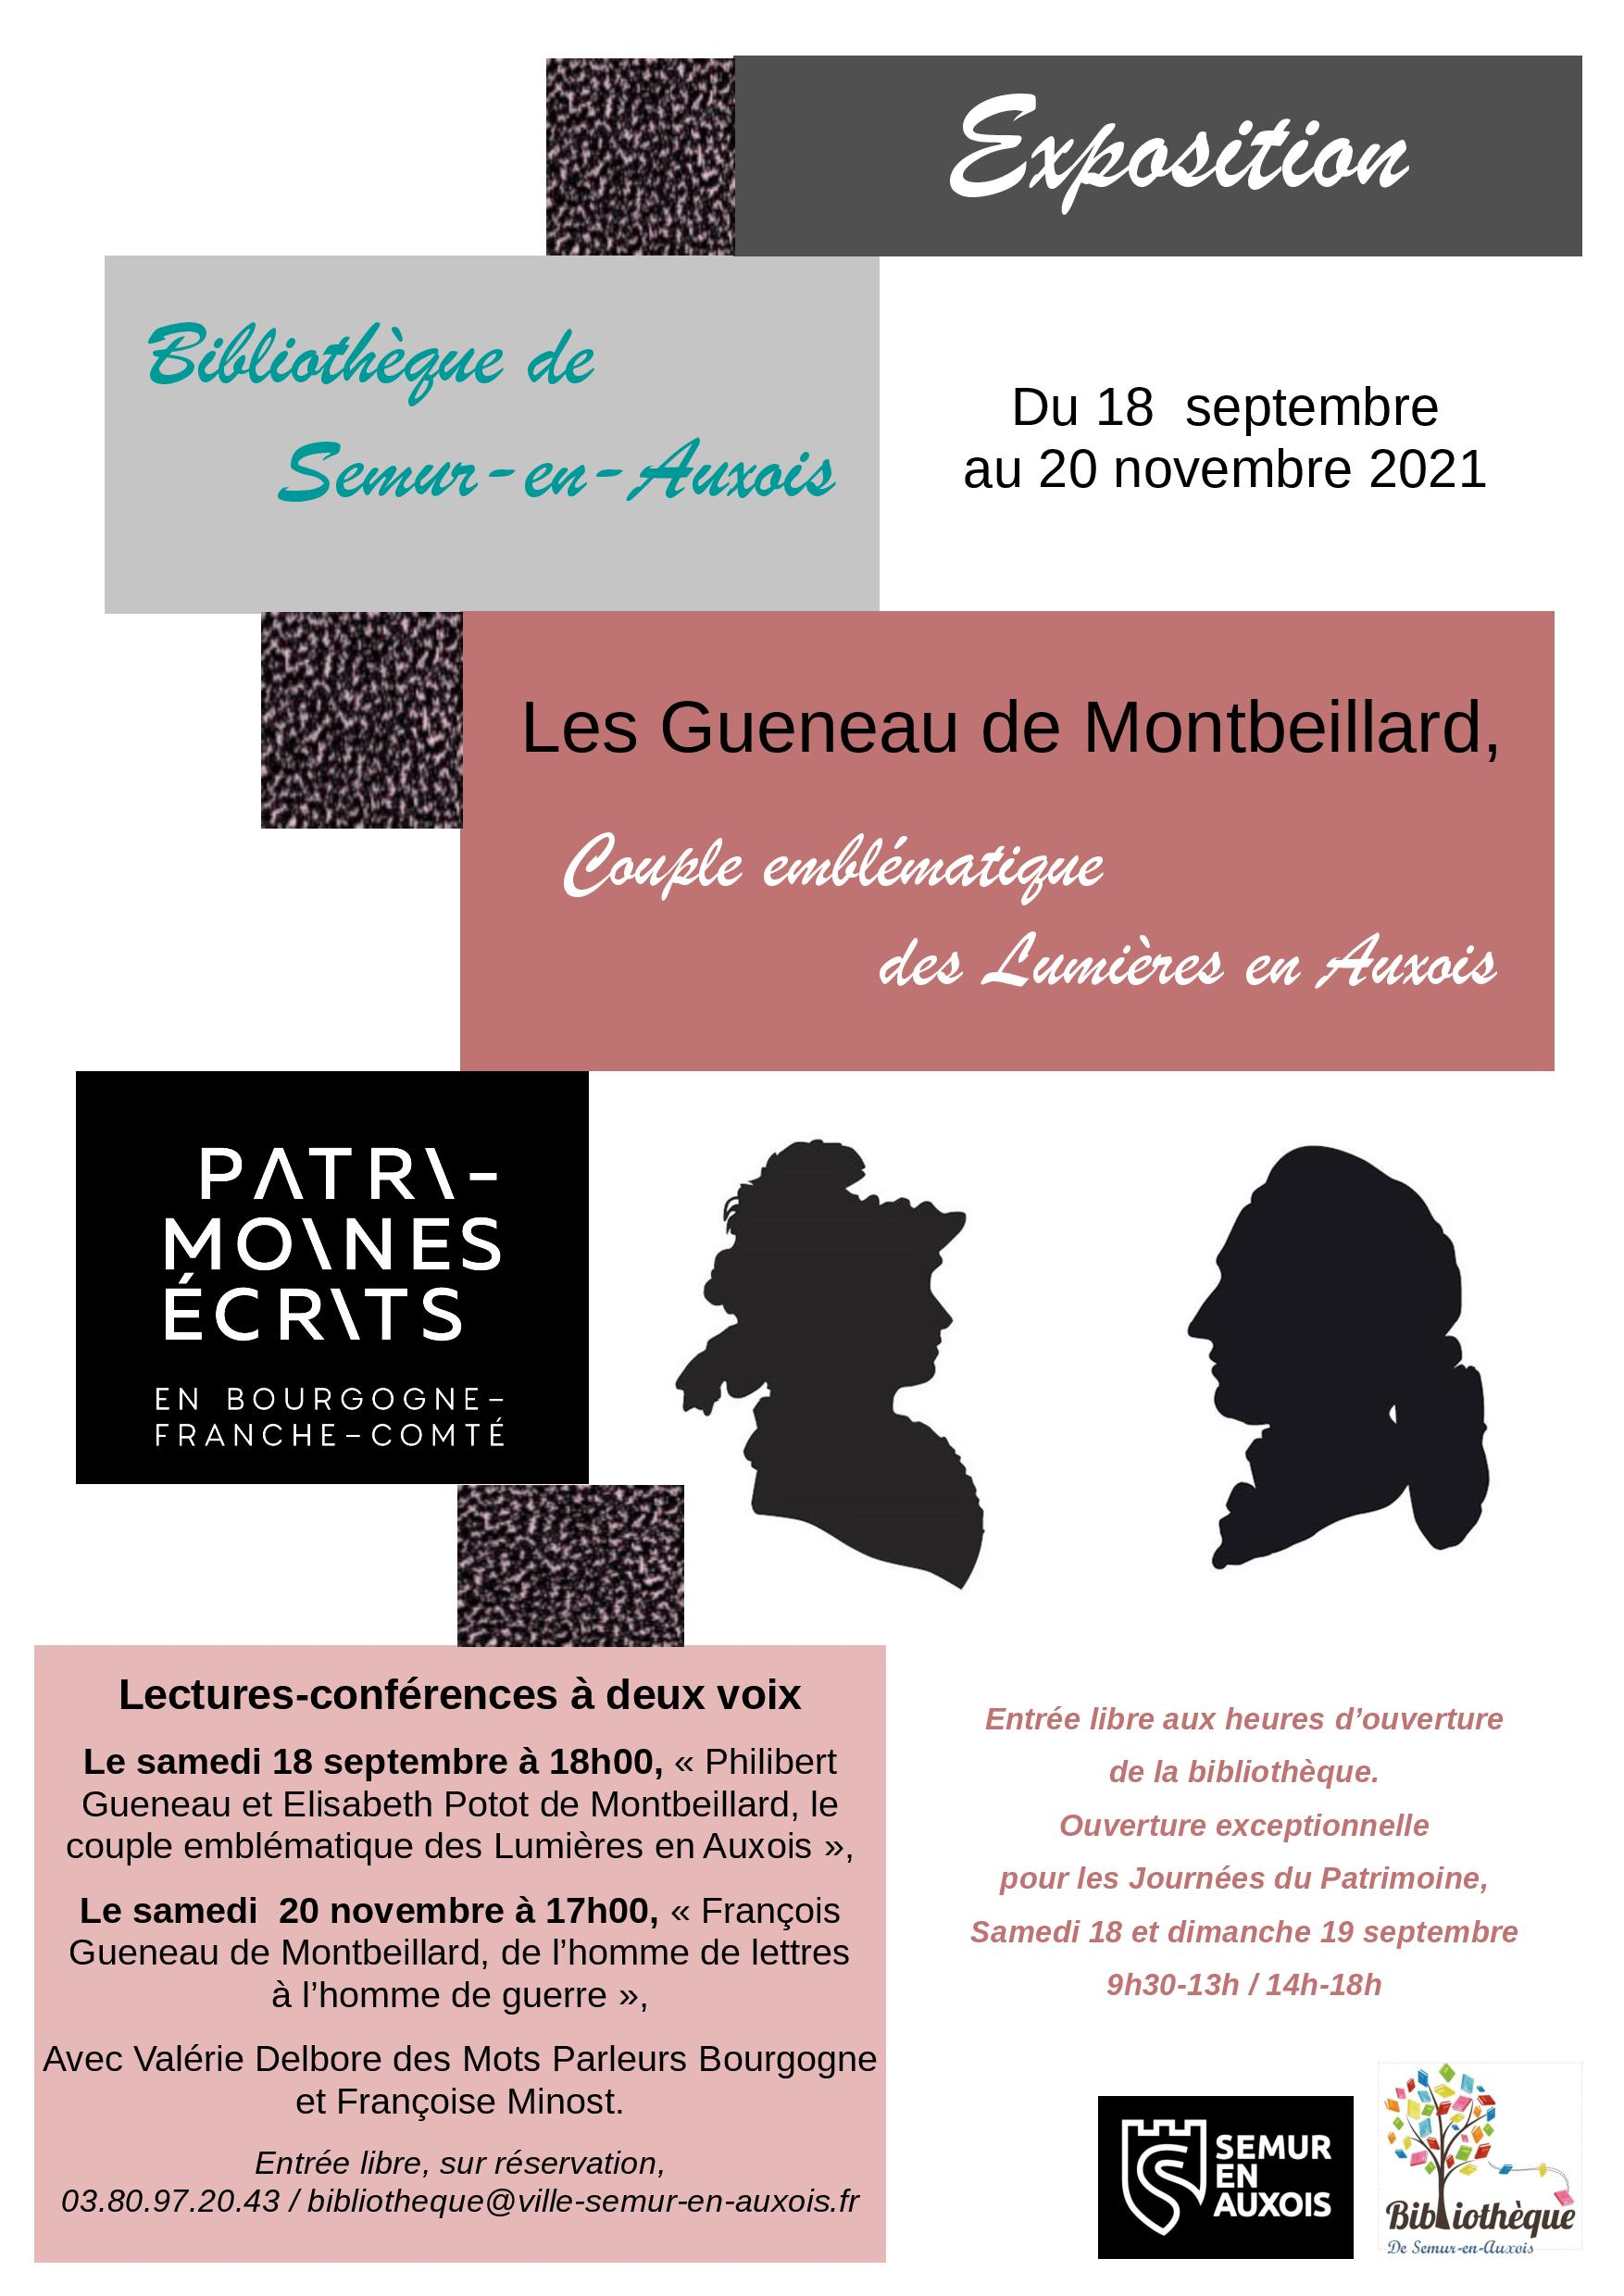 affiche expo-page-001-2